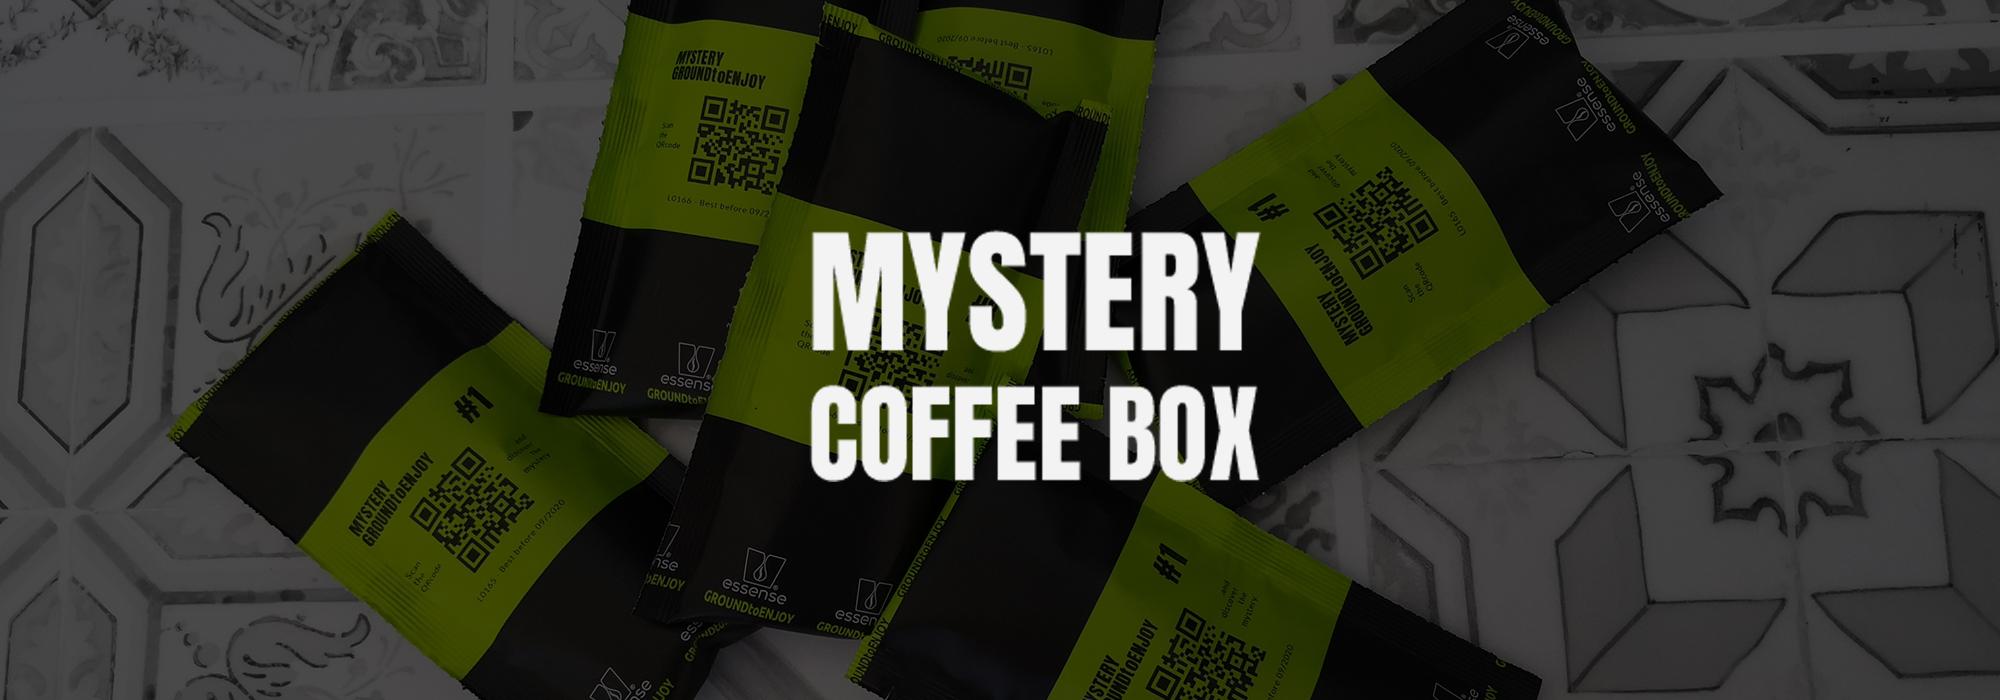 Mystery coffee box